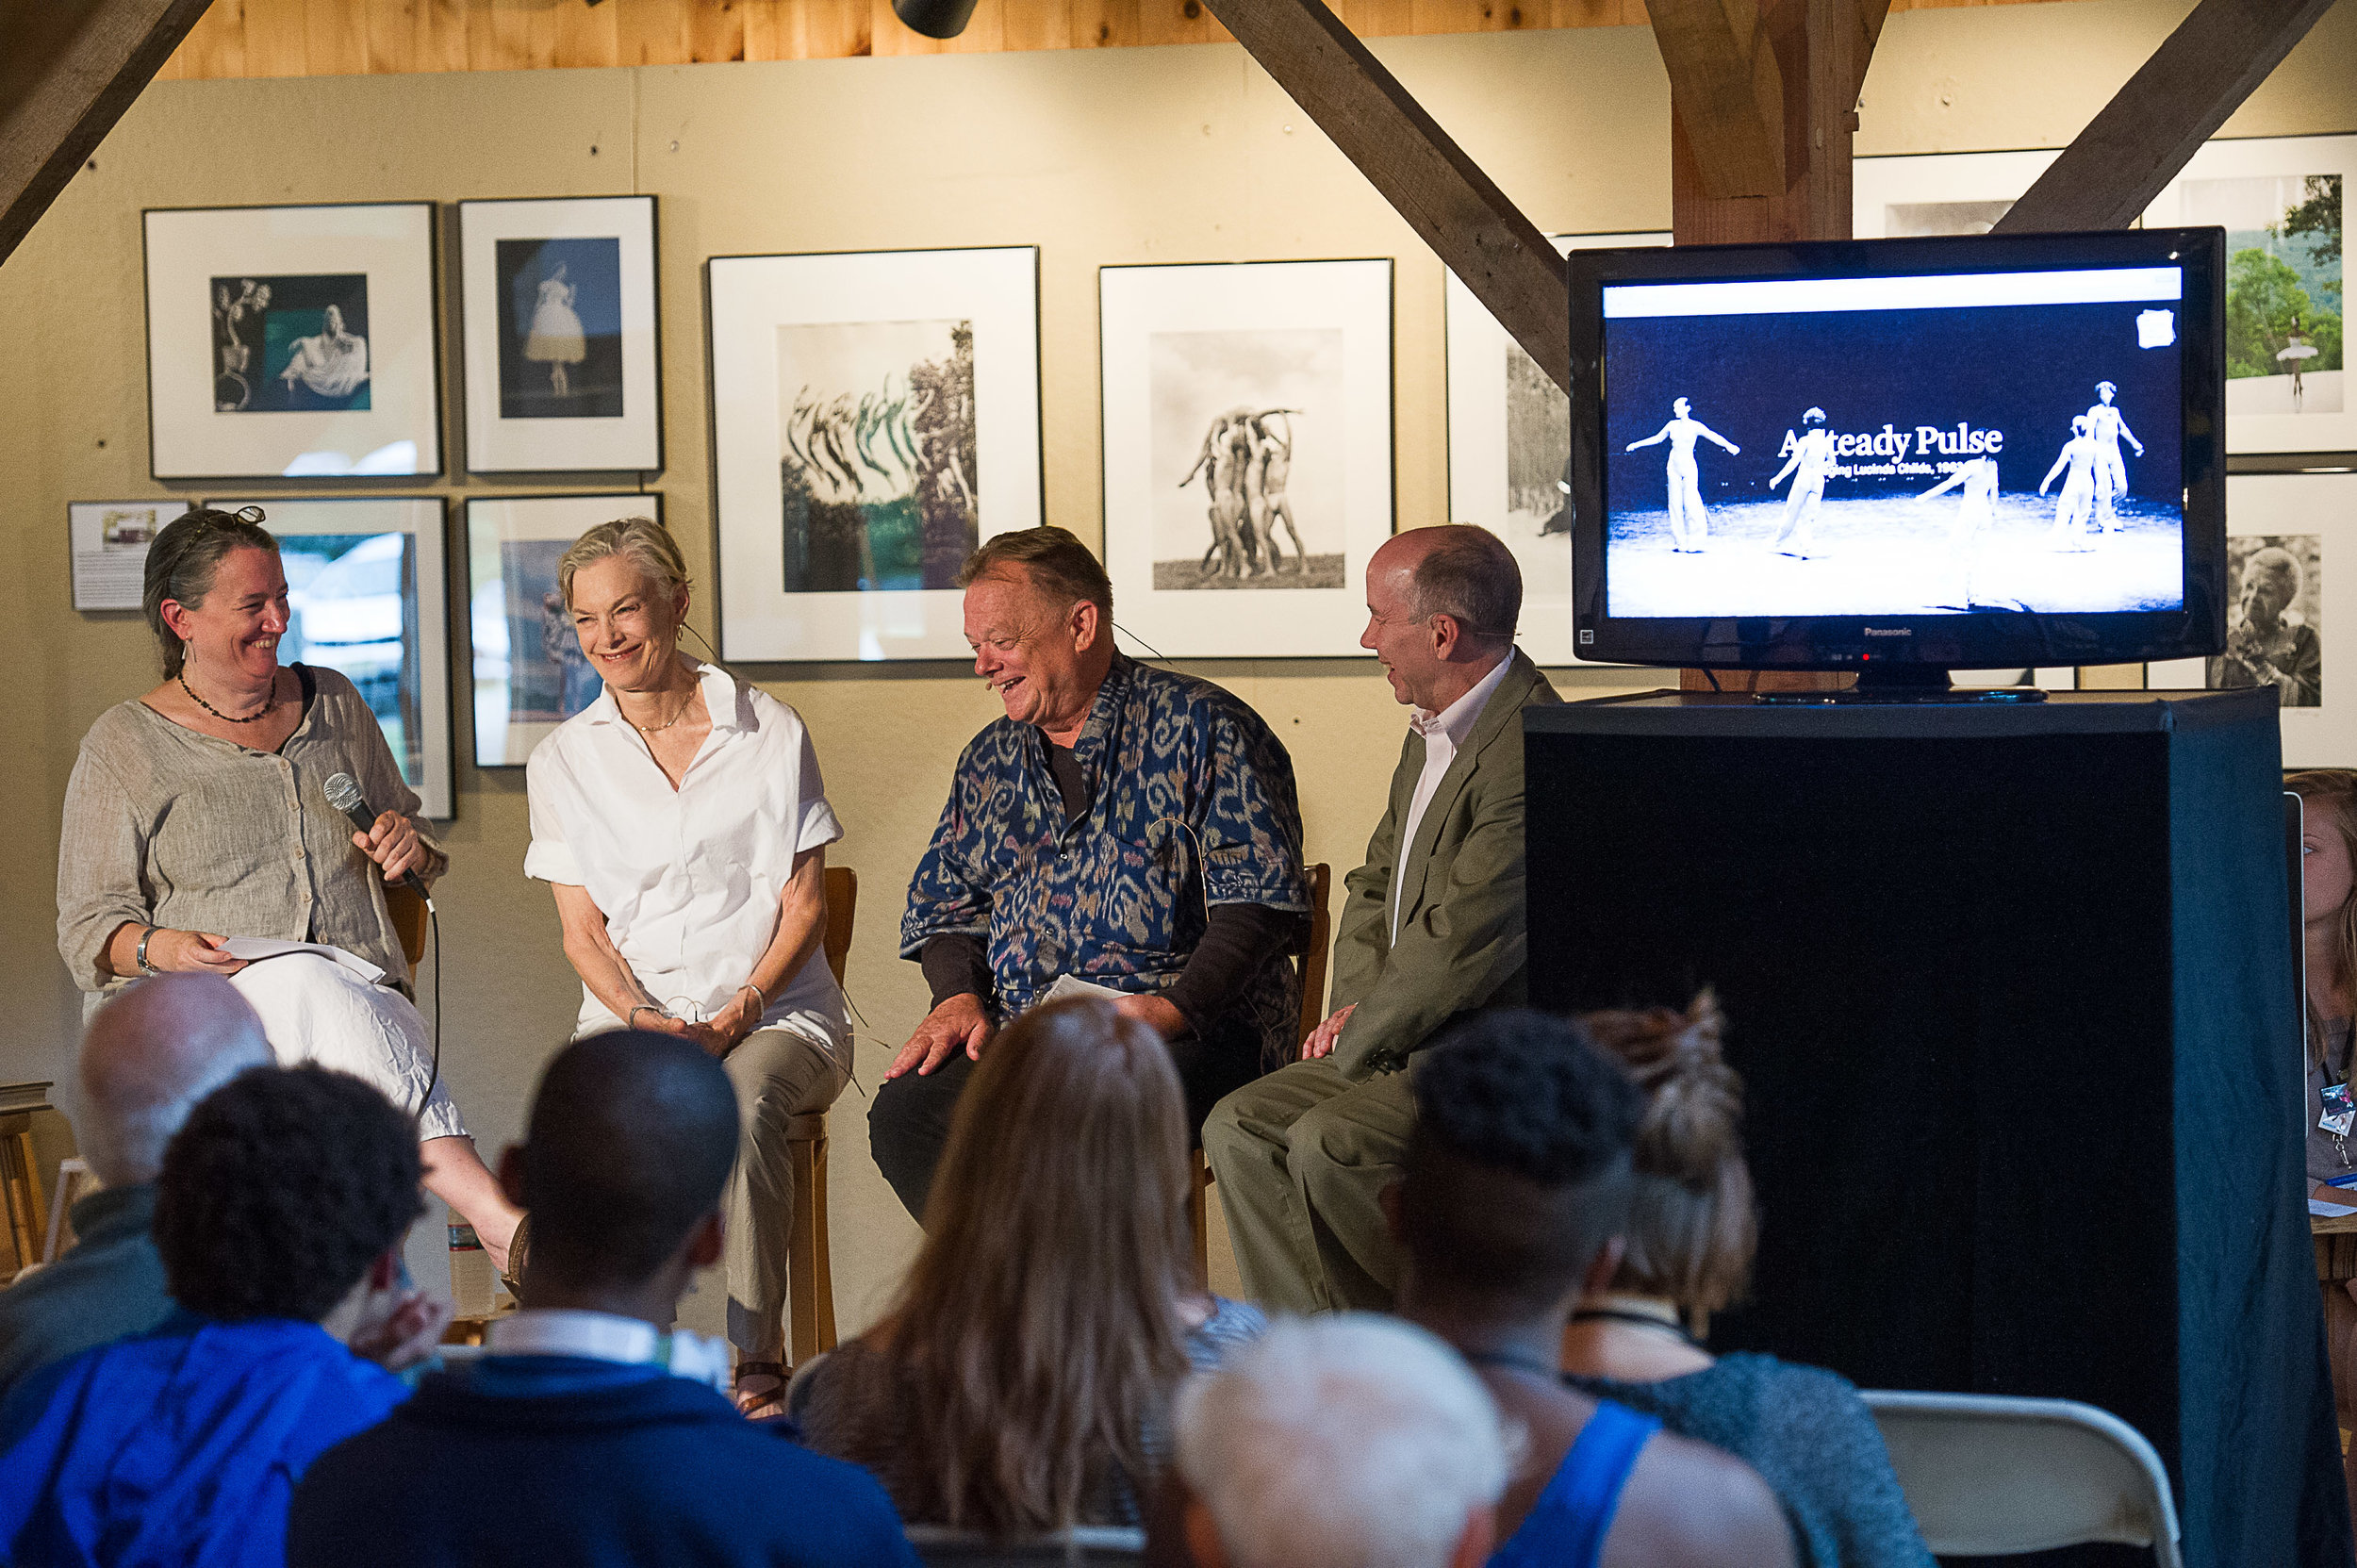 Photo of Maura, Lucinda Childs, Bill Bissell (Director of Performance, Pew Center for Arts and Heritage) & Norton Owen (Jacob's Pillow, Director of Preservation) by Christopher Duggan.